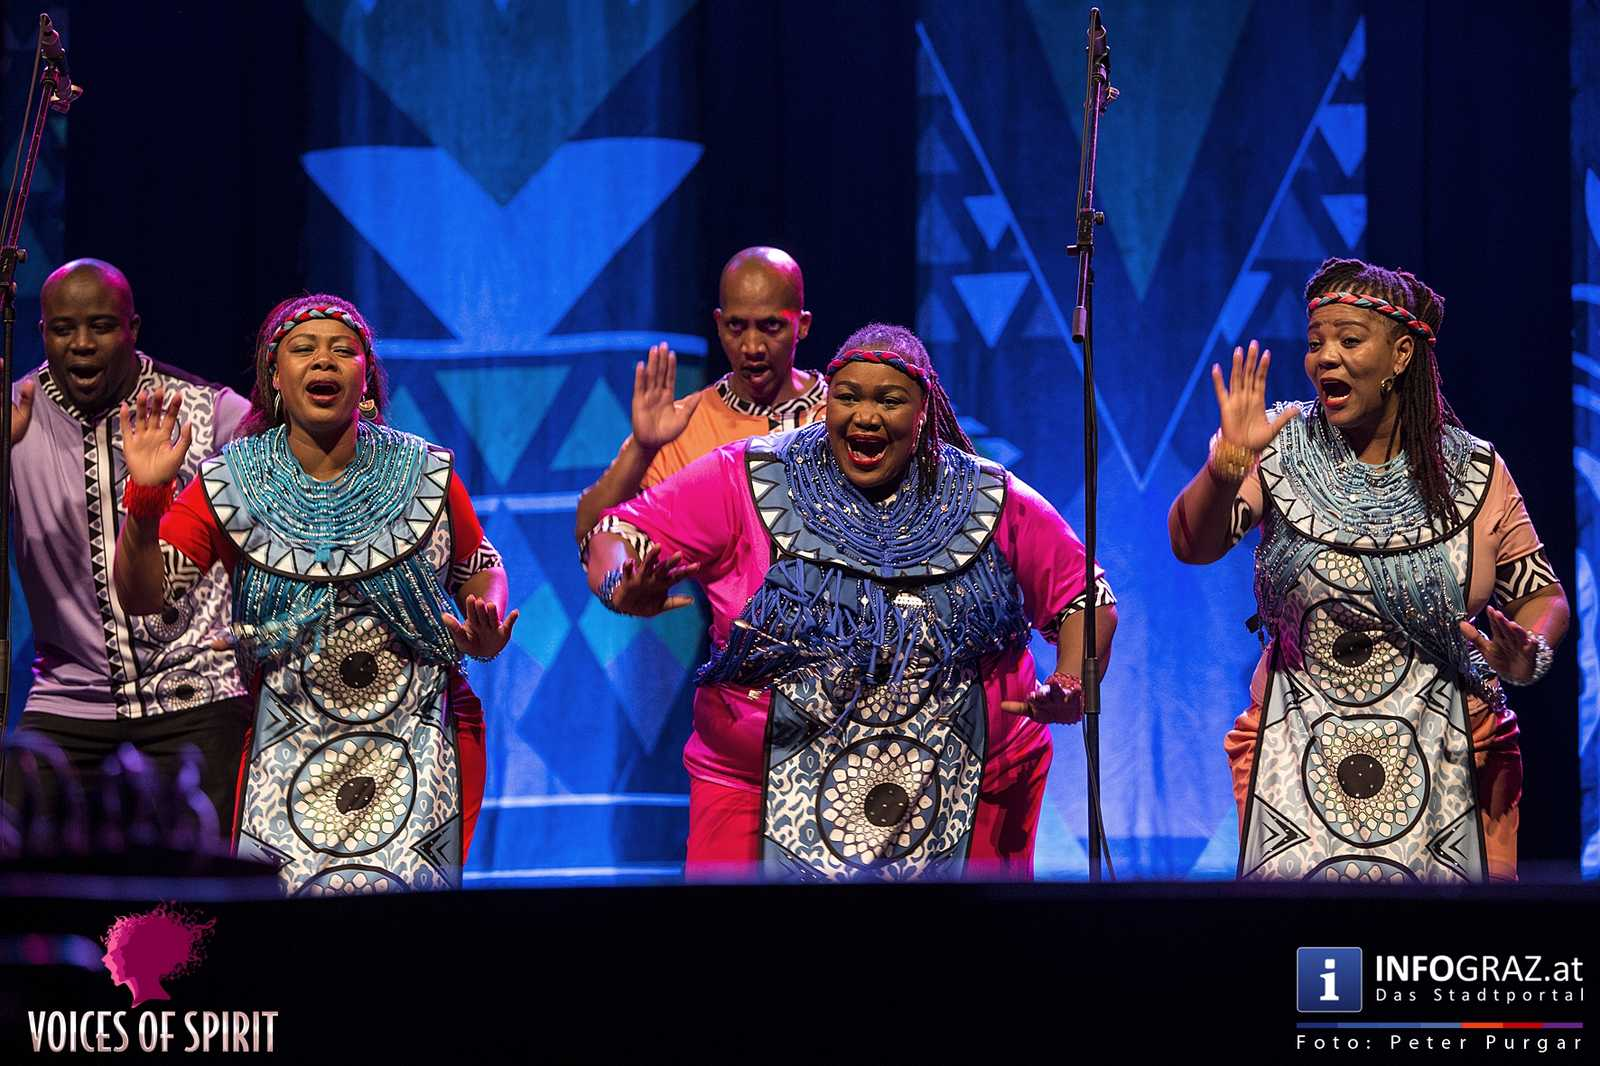 soweto gospel choir internationales chorfestival statdthalle graz voices of spirit eroeffnung festivals 2016 082